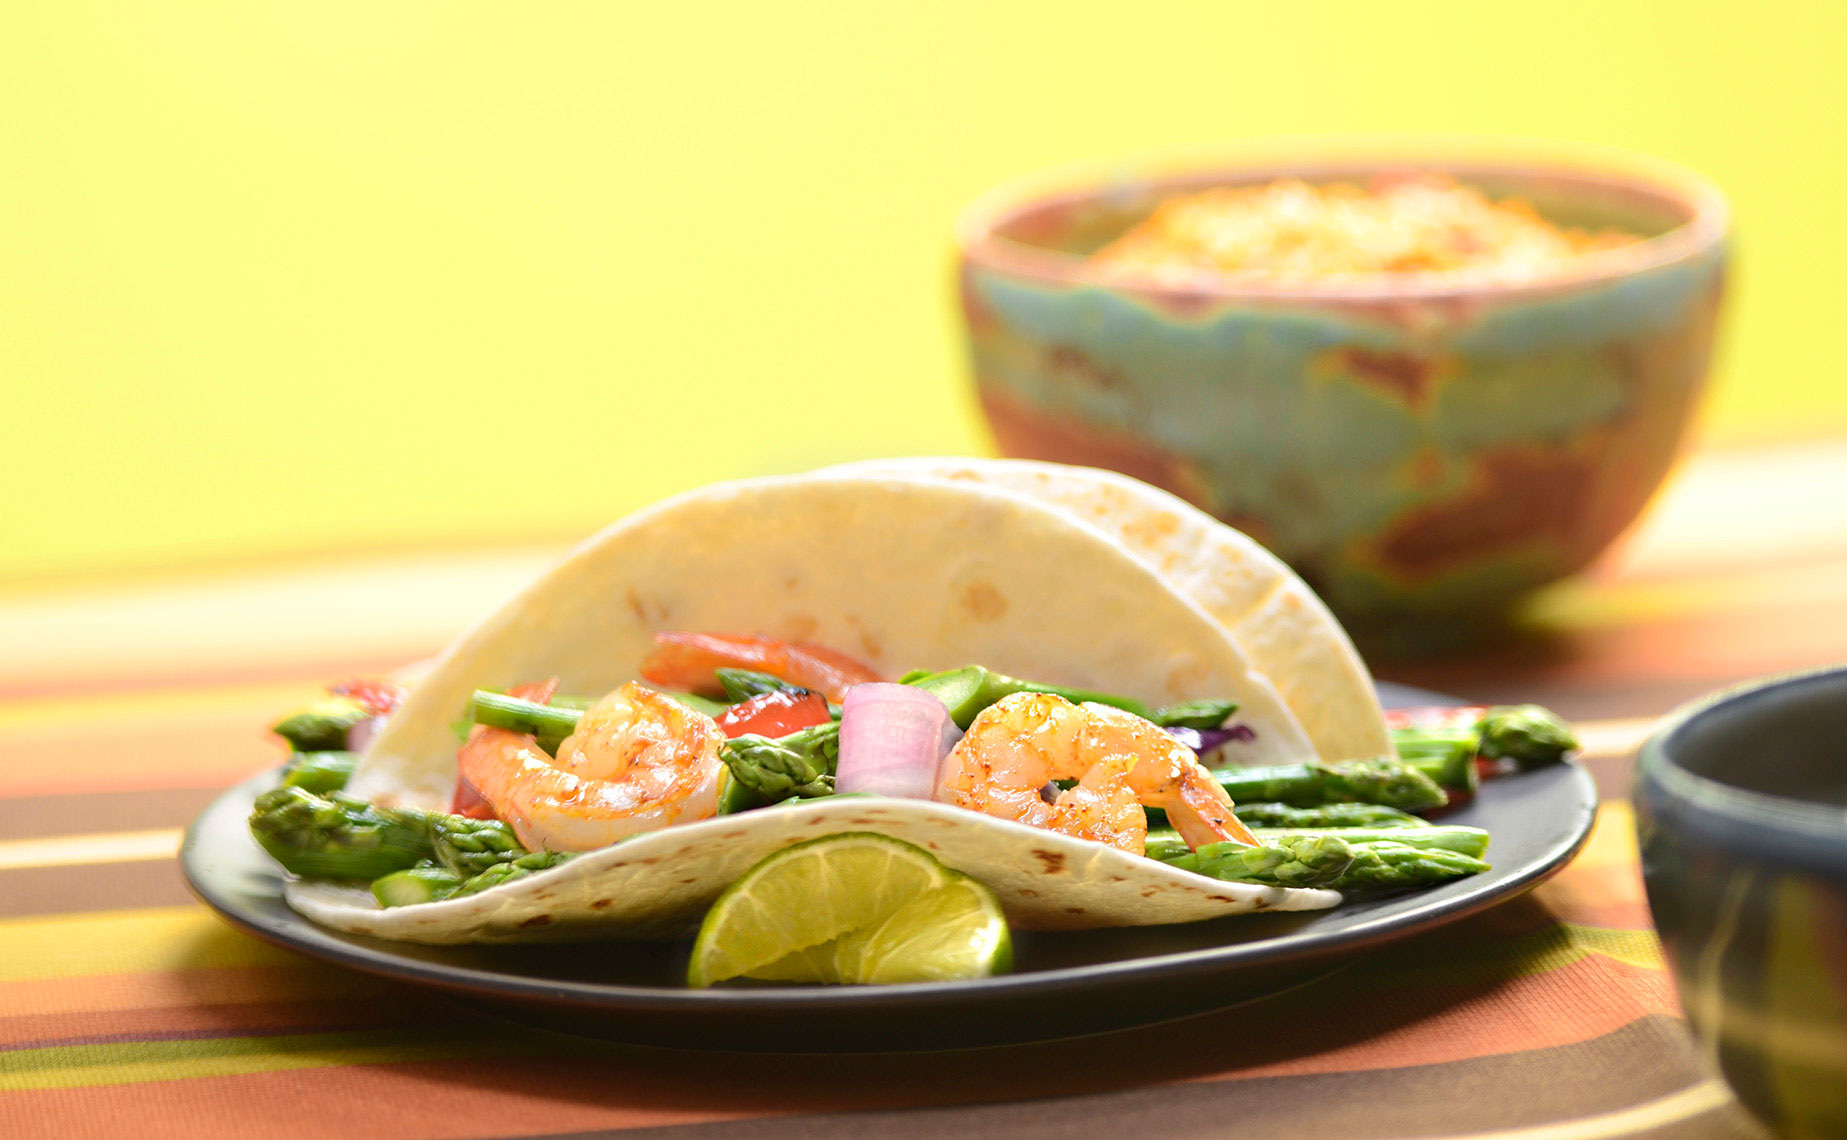 Shrimp-and-asparagus-tacos-by-Joe-Atlas-food-photography.